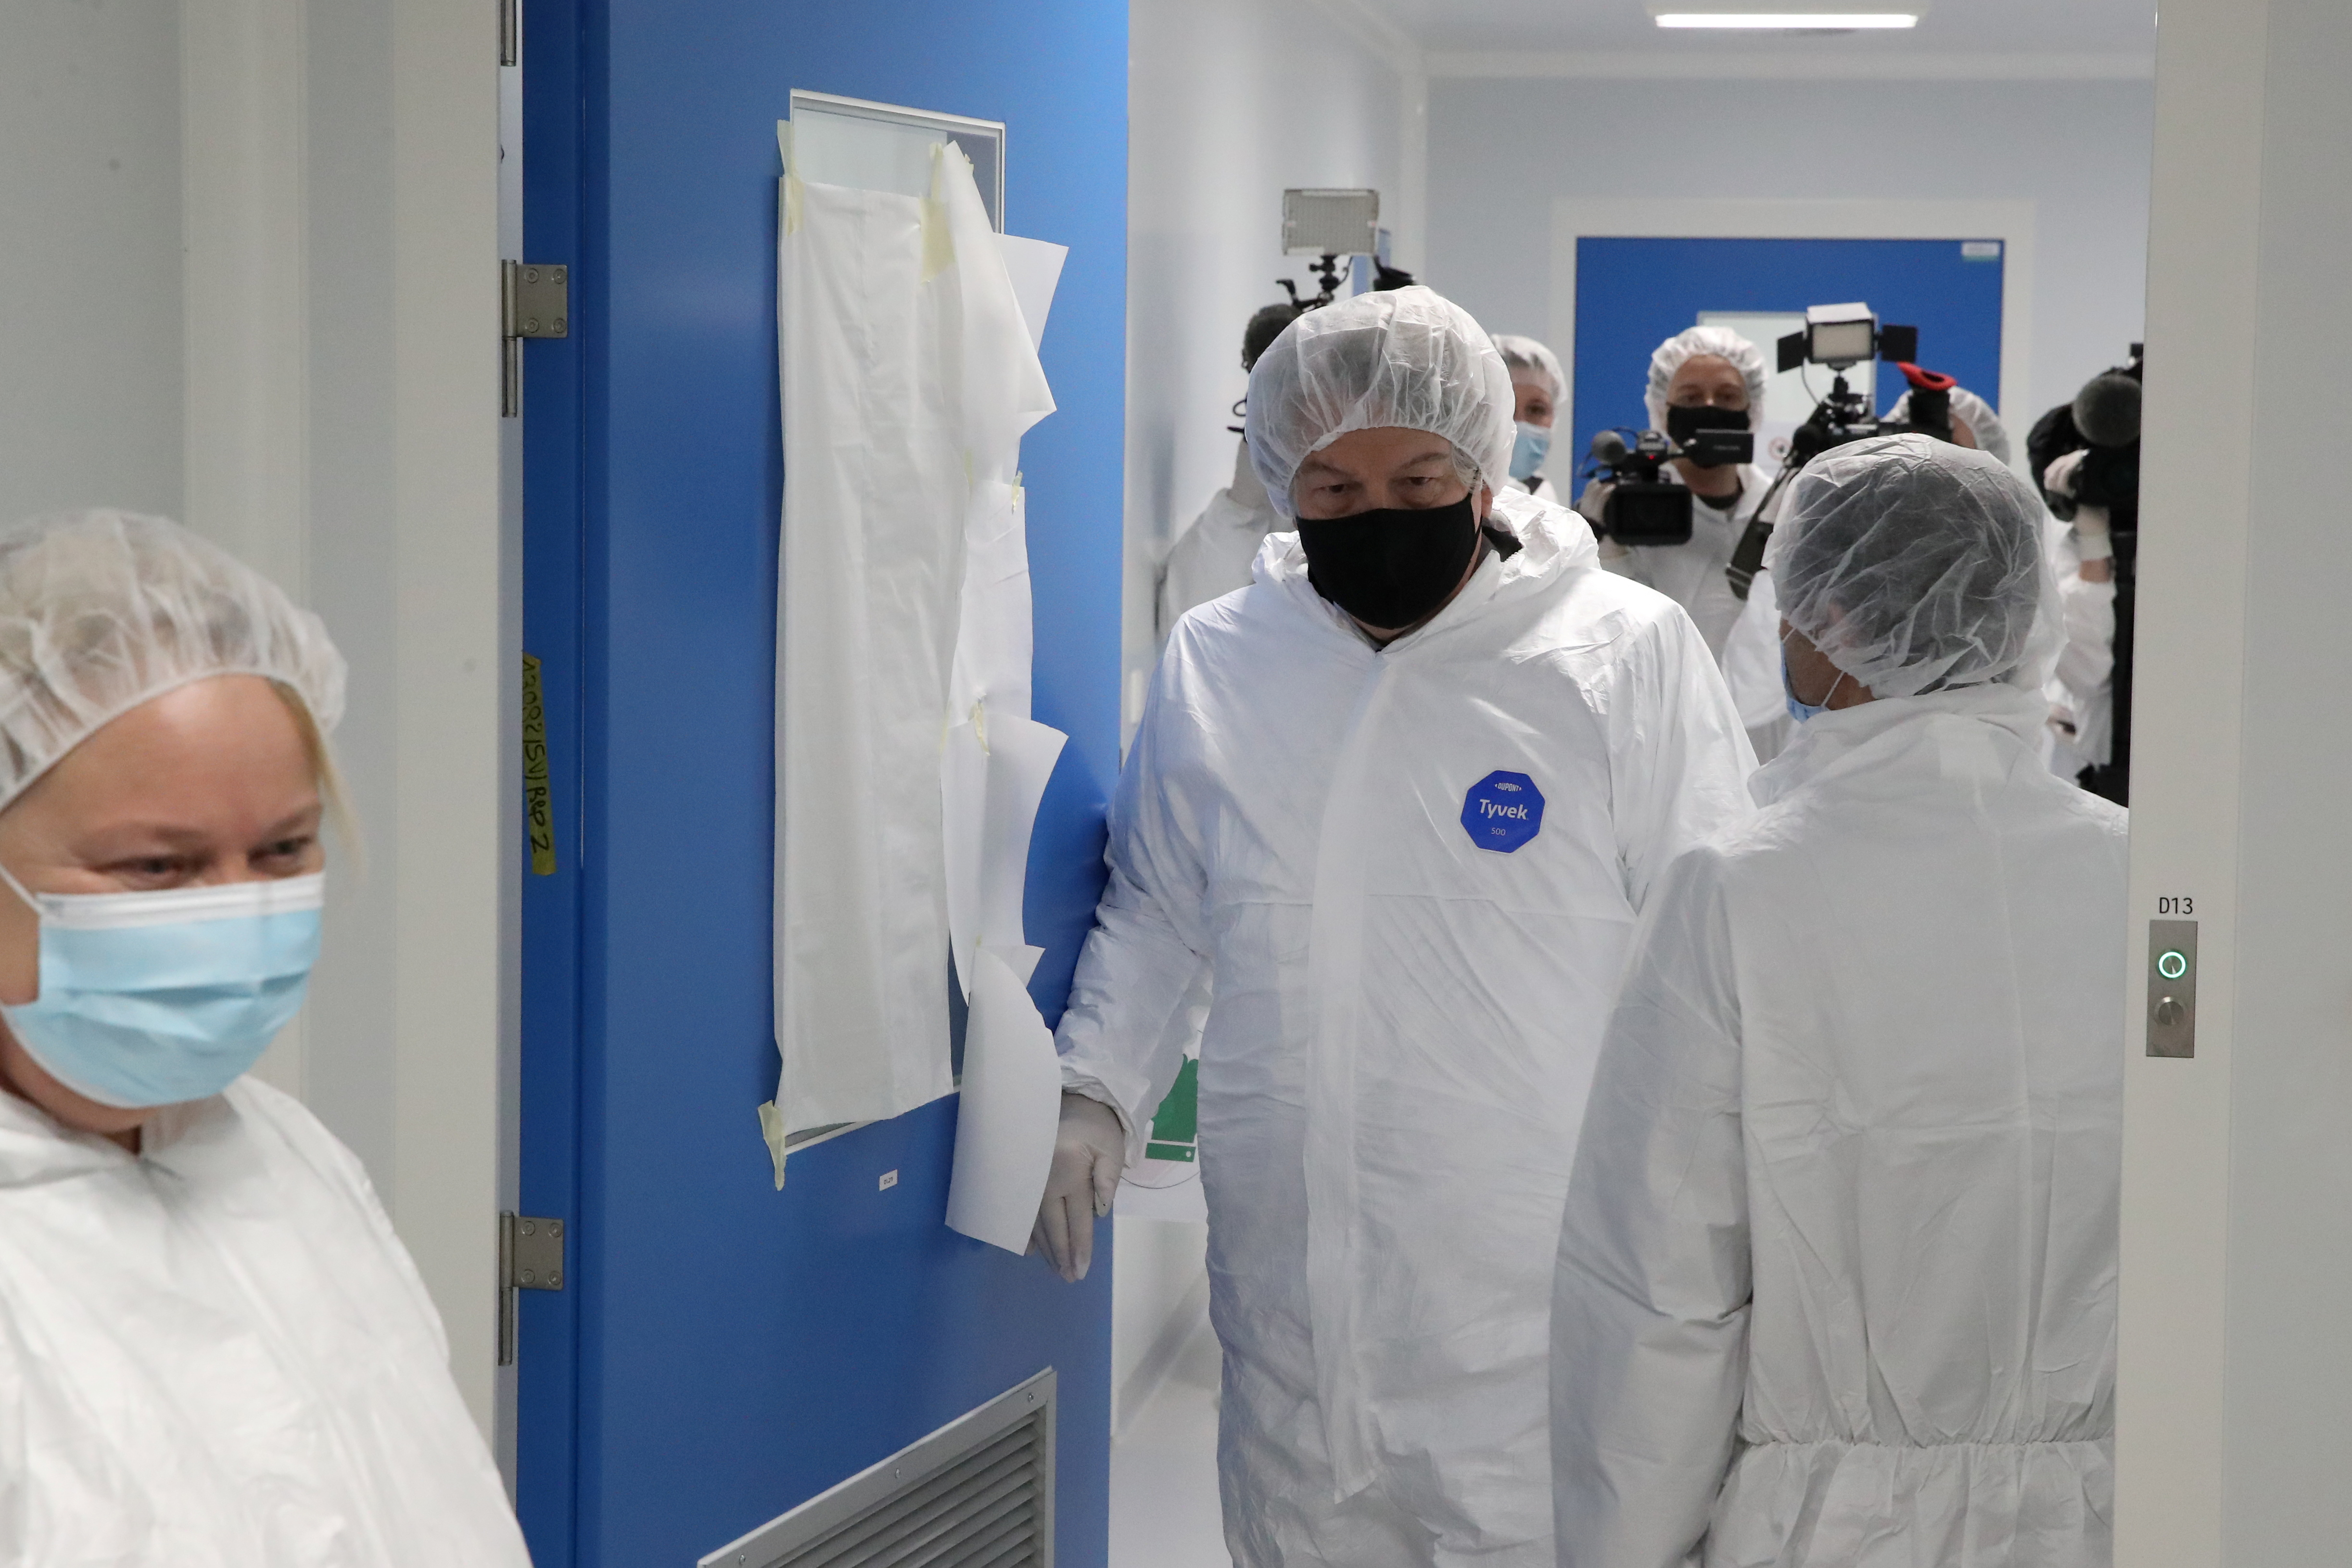 European Industry Commissioner Thierry Breton, wearing protective gear, enters a lab during a visit at the Thermo Fisher plant, former Novasep, producing COVID-19 vaccines for AstraZeneca in Seneffe, Belgium, February 10, 2021.  REUTERS/Yves Herman